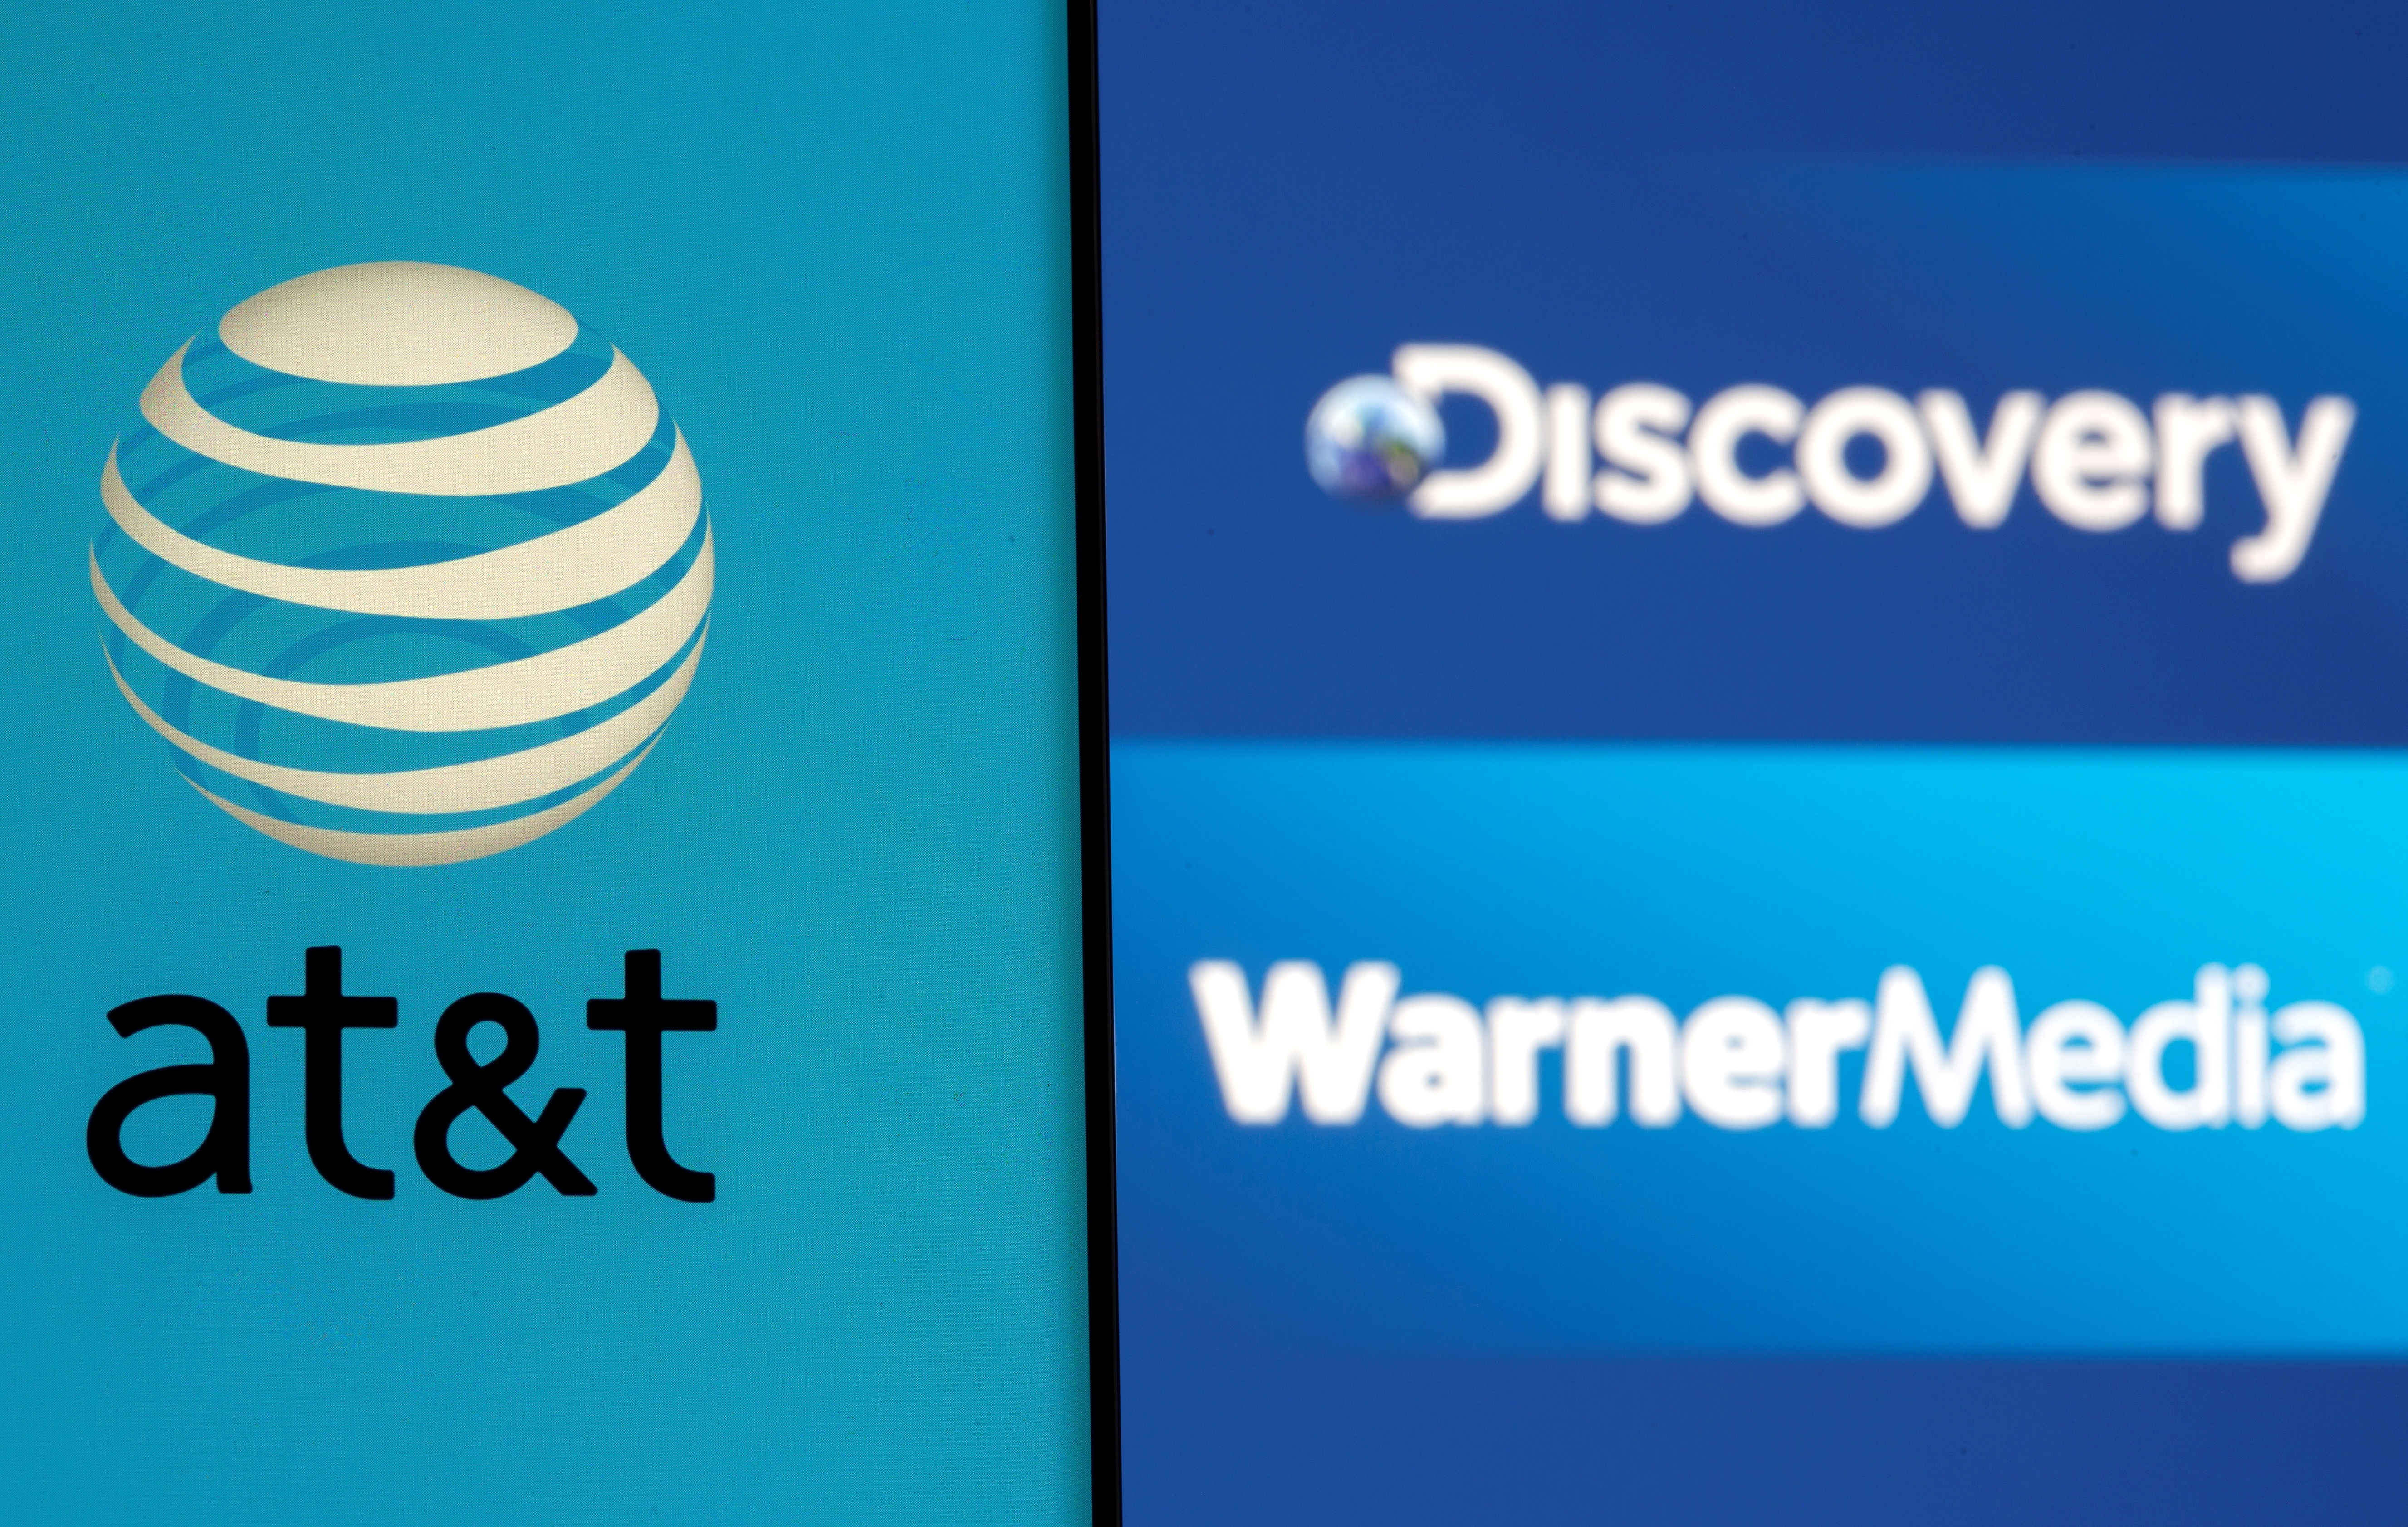 AT&T logo is seen on a smartphone in front of displayed Discovery and Warner Media logos in this illustration taken May 17, 2021. REUTERS/Dado Ruvic